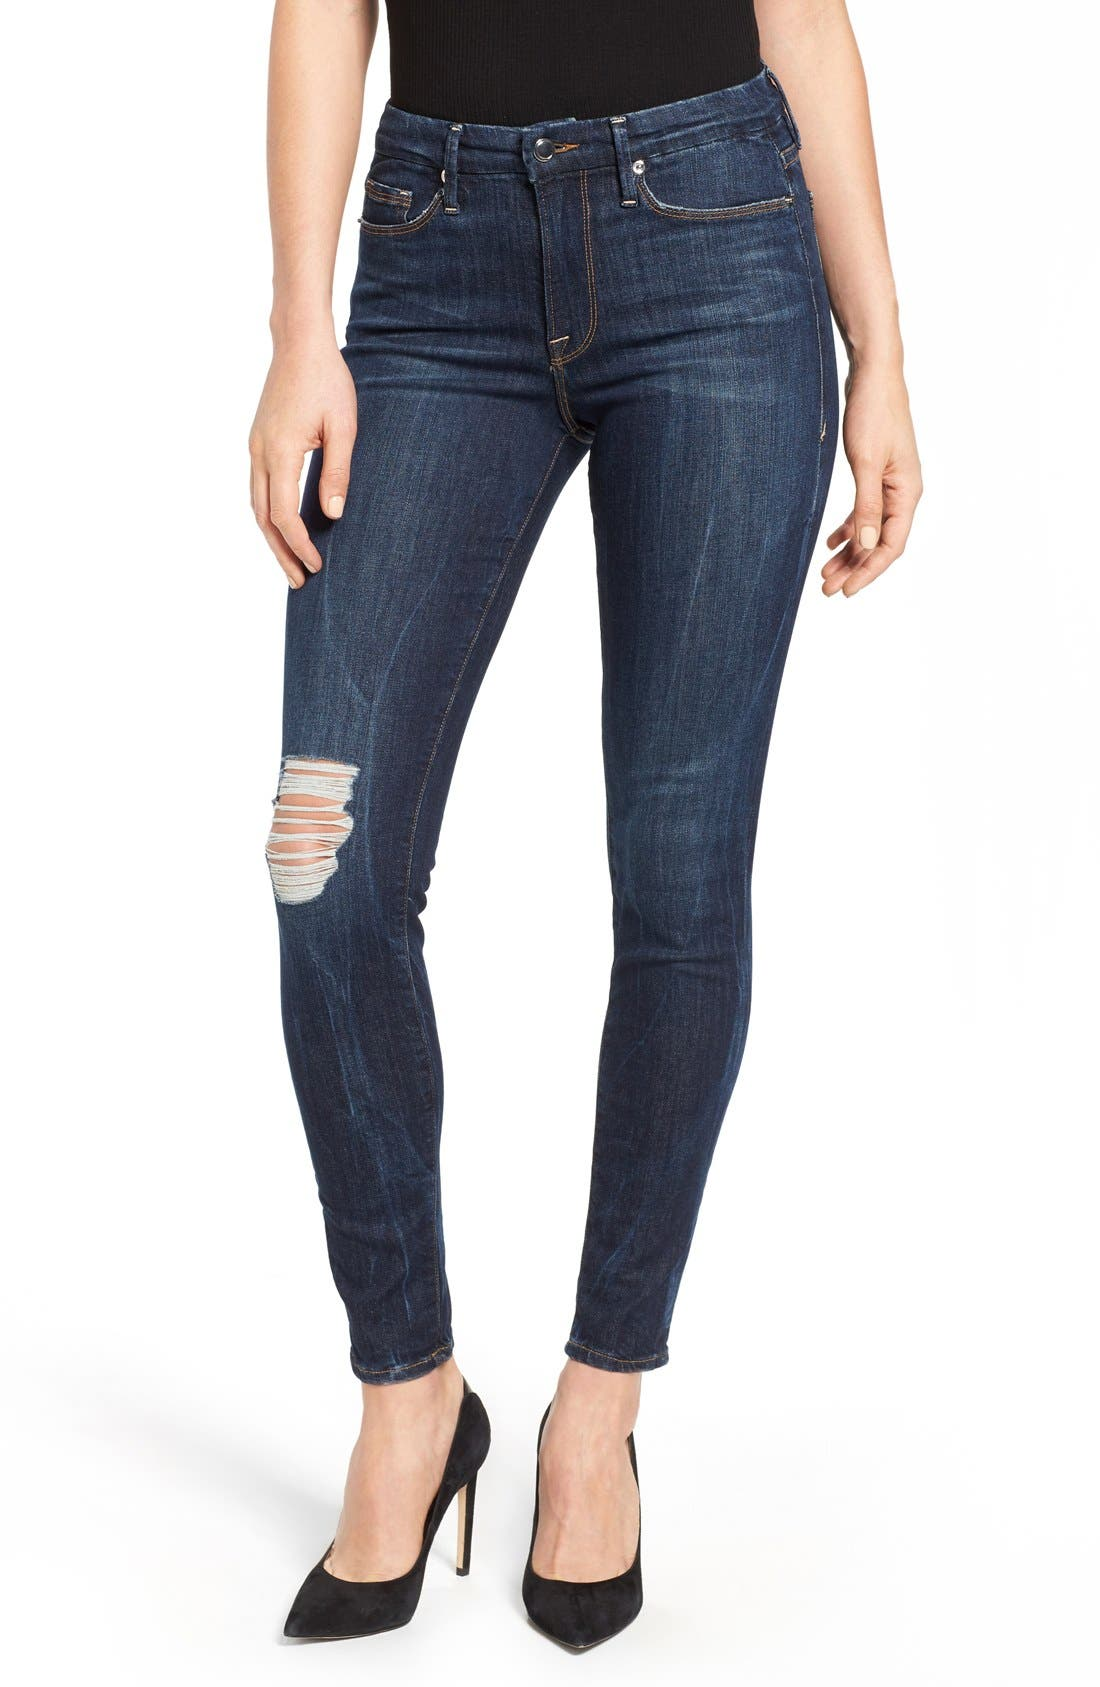 Main Image - Good American Good Legs Ripped Skinny Jeans (Blue 002)